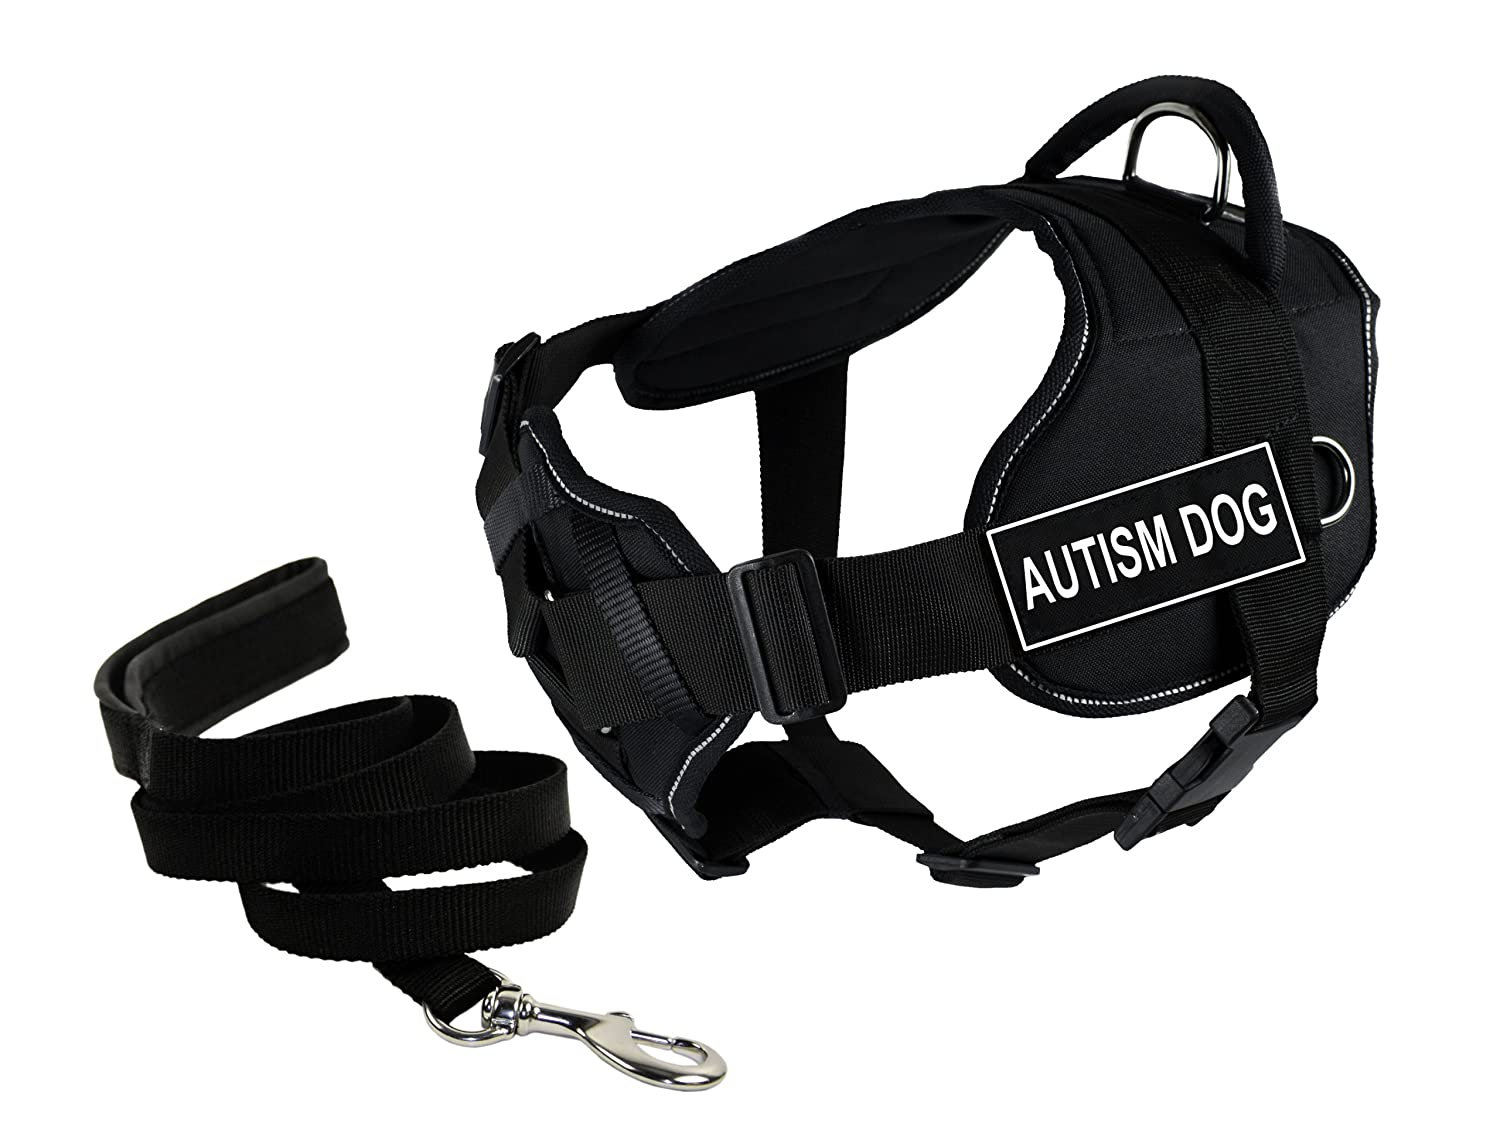 Dean & Tyler Bundle of 22 to 27-Inch DT Fun Harness with Chest Support and 6-Feet Stainless Snap Padded Puppy Leash, Autism Dog, Black with Reflective Trim